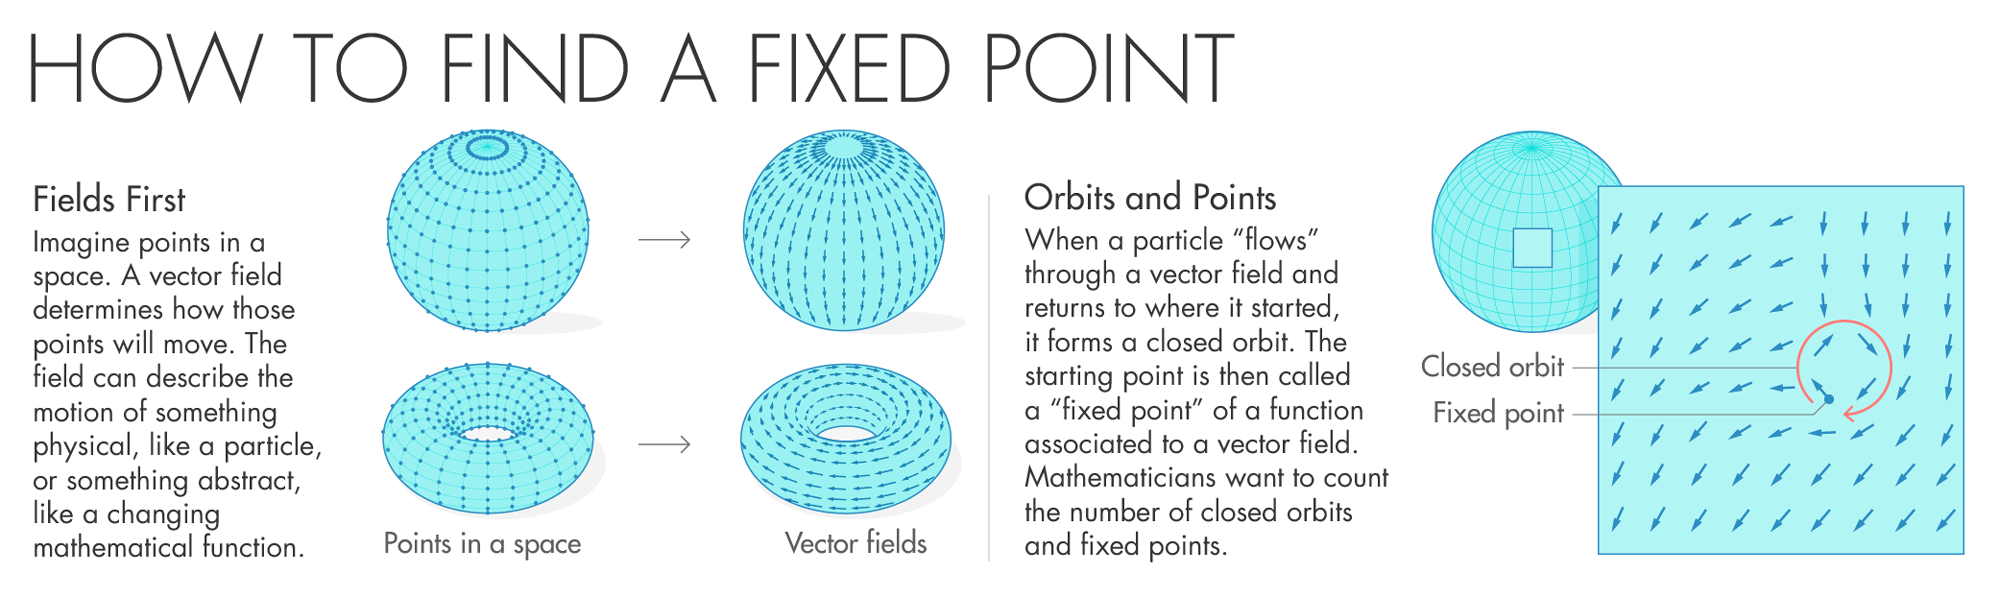 Graphic: How to find fixed points